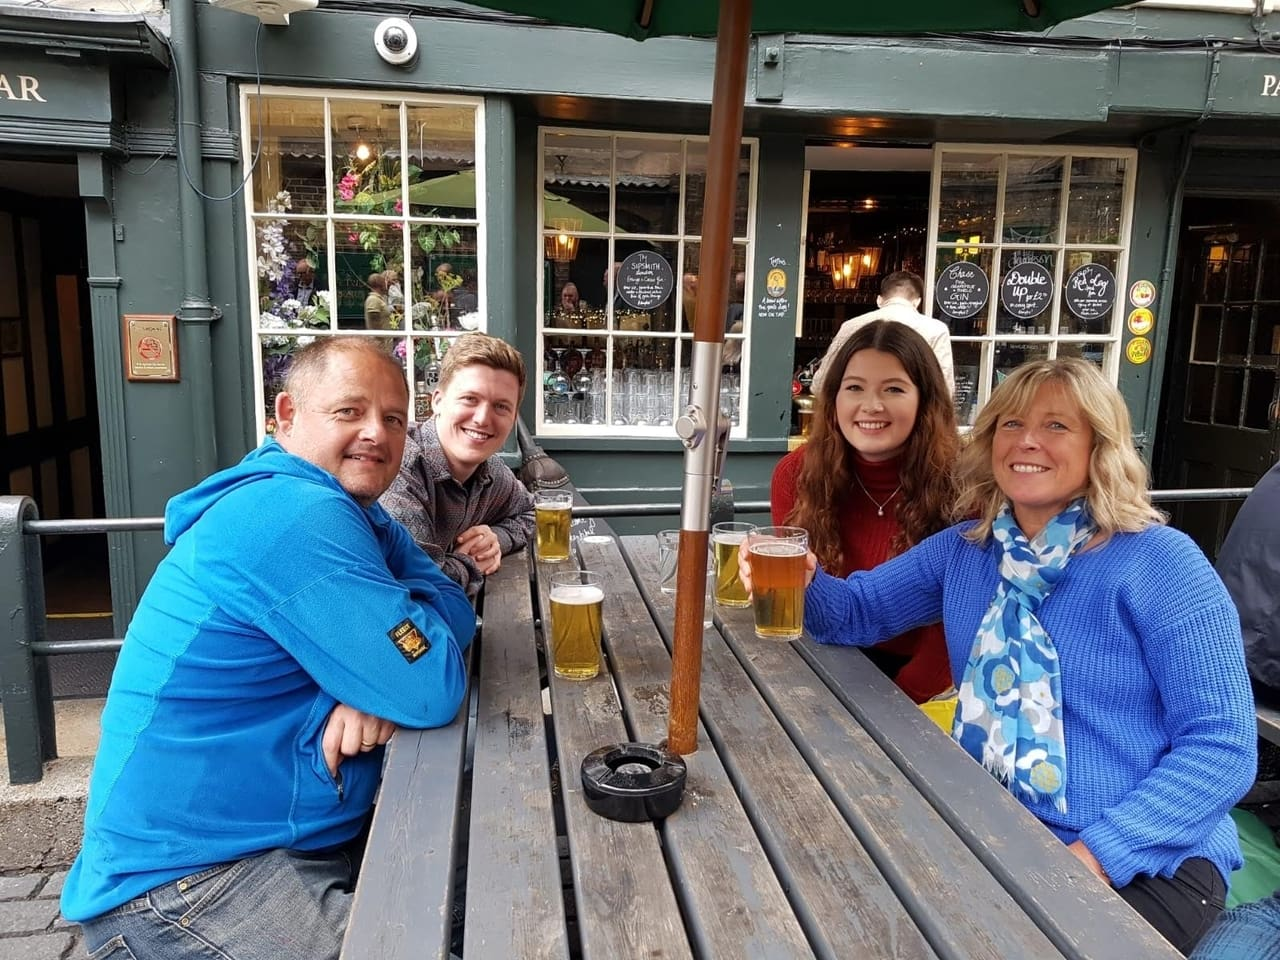 Family at The George Inn pub in London